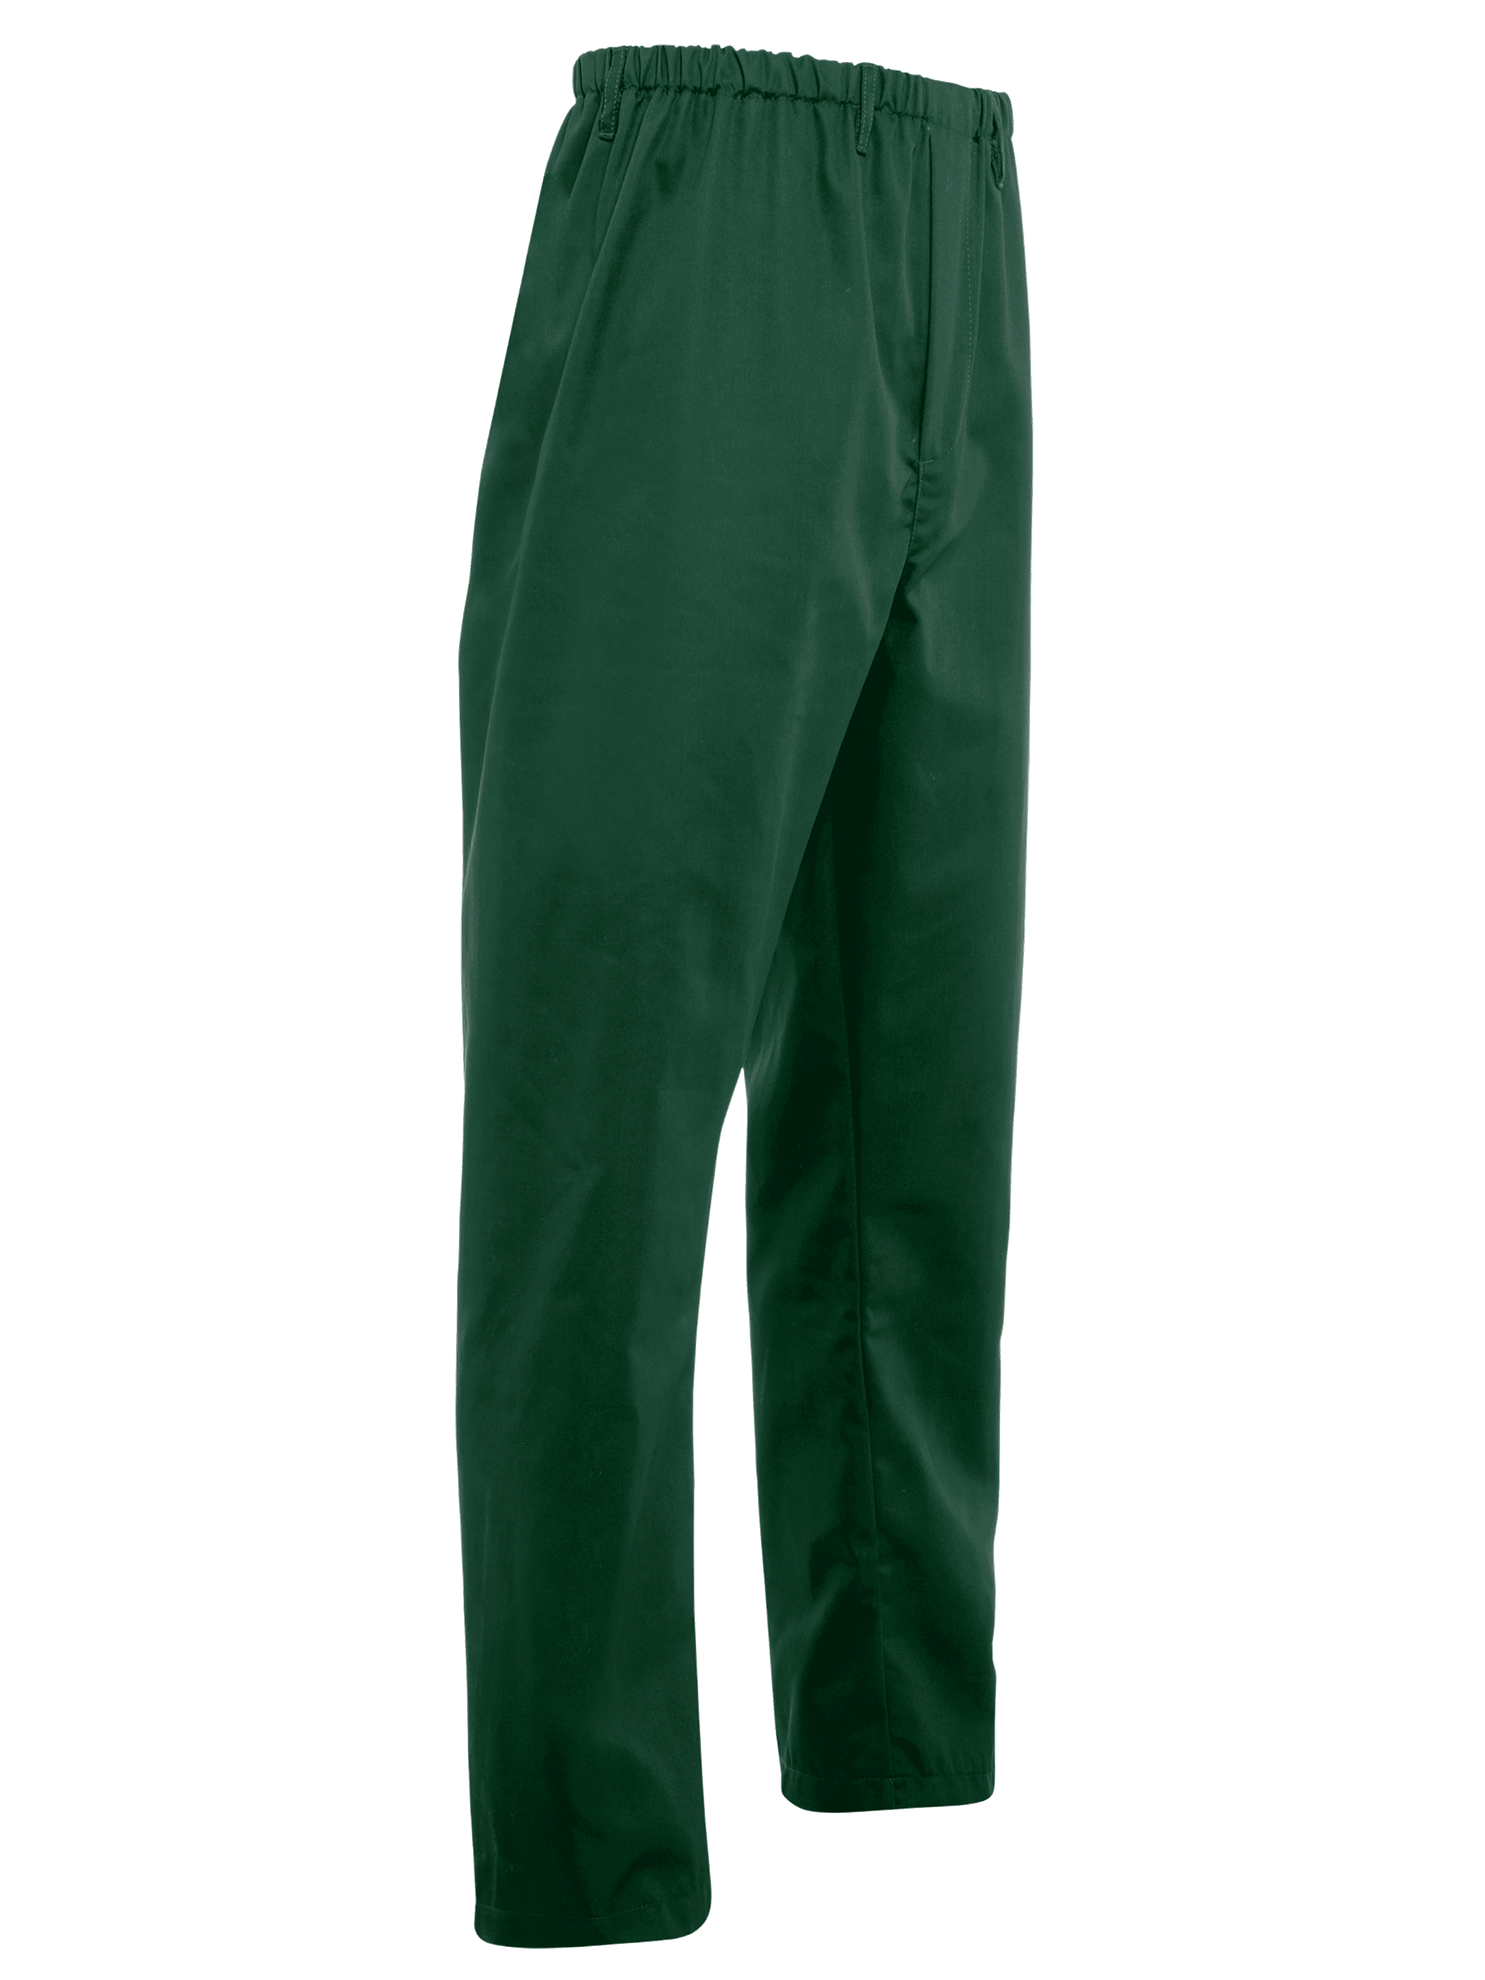 Picture of Food Trade Trouser Full Elasticated Waistband (245gsm) - Bottle Green